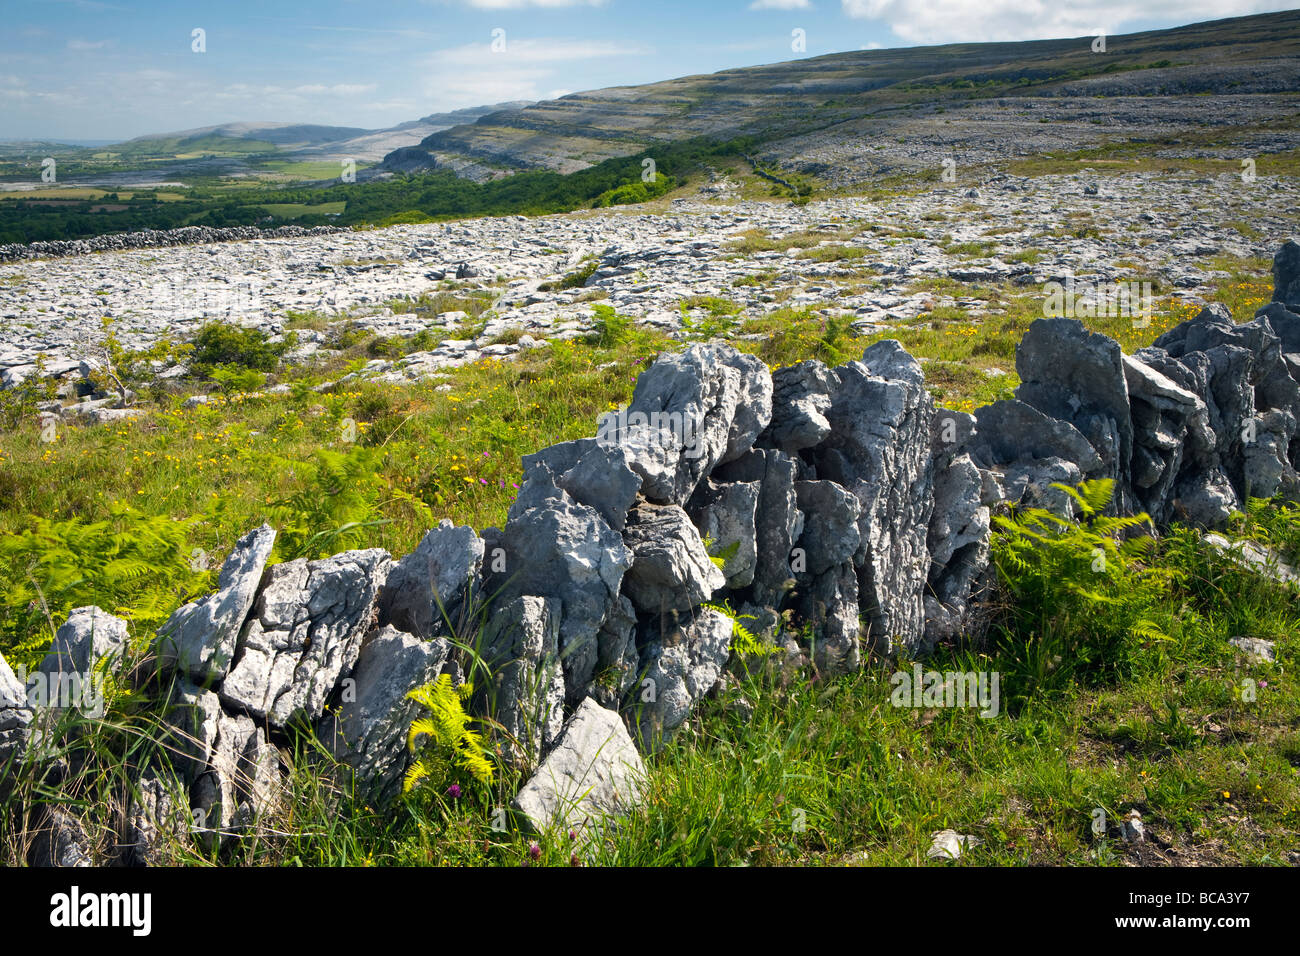 A landscape view taken in the Burren, County Clare, Eire - Stock Image